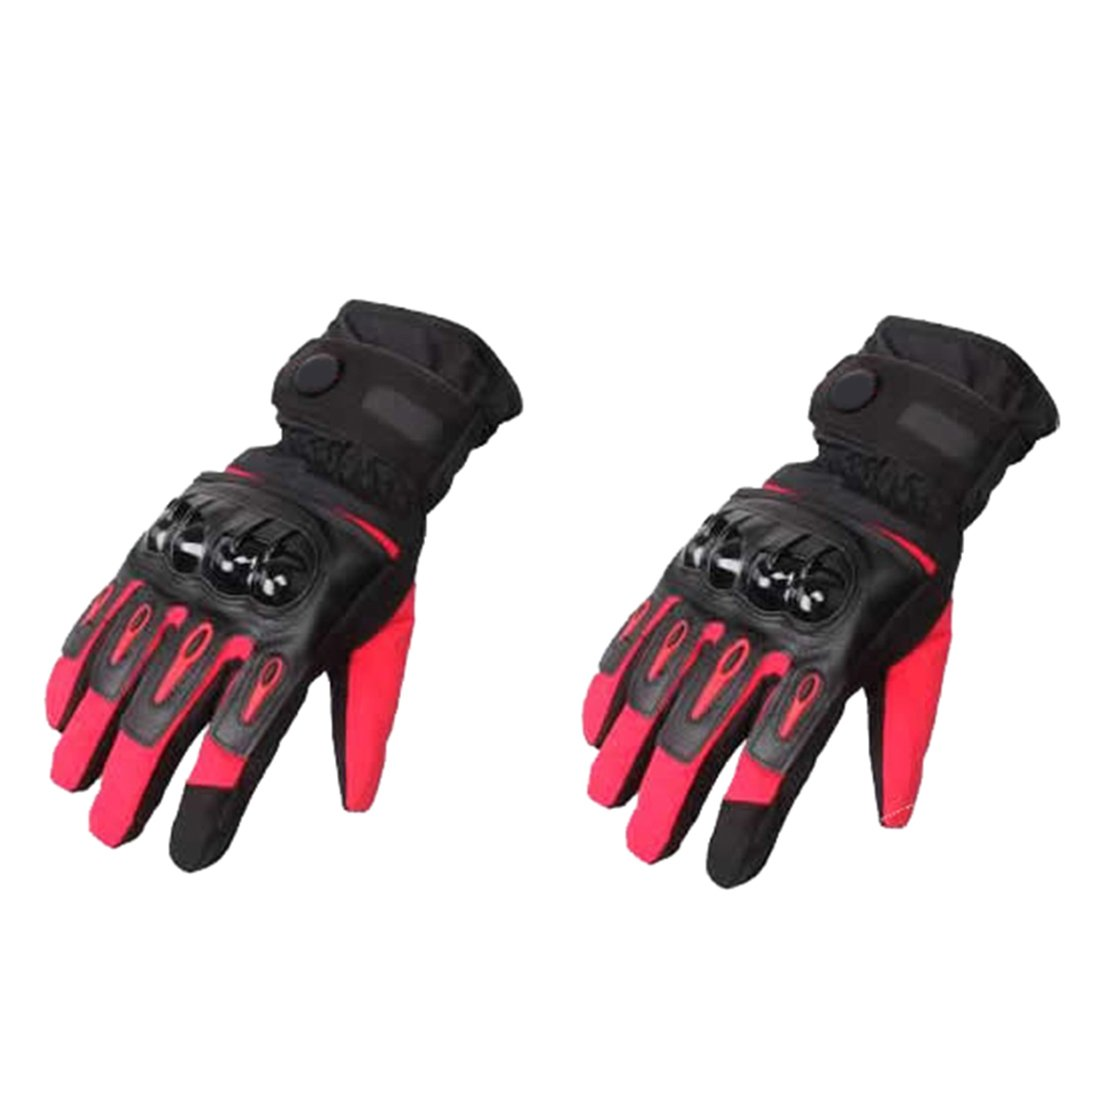 LLFS Motorcycle Gloves Biker Cowhide Leather Motorbike Motorcycle Heavy Duty Waterproof Gloves Collection Winter Leather Gloves